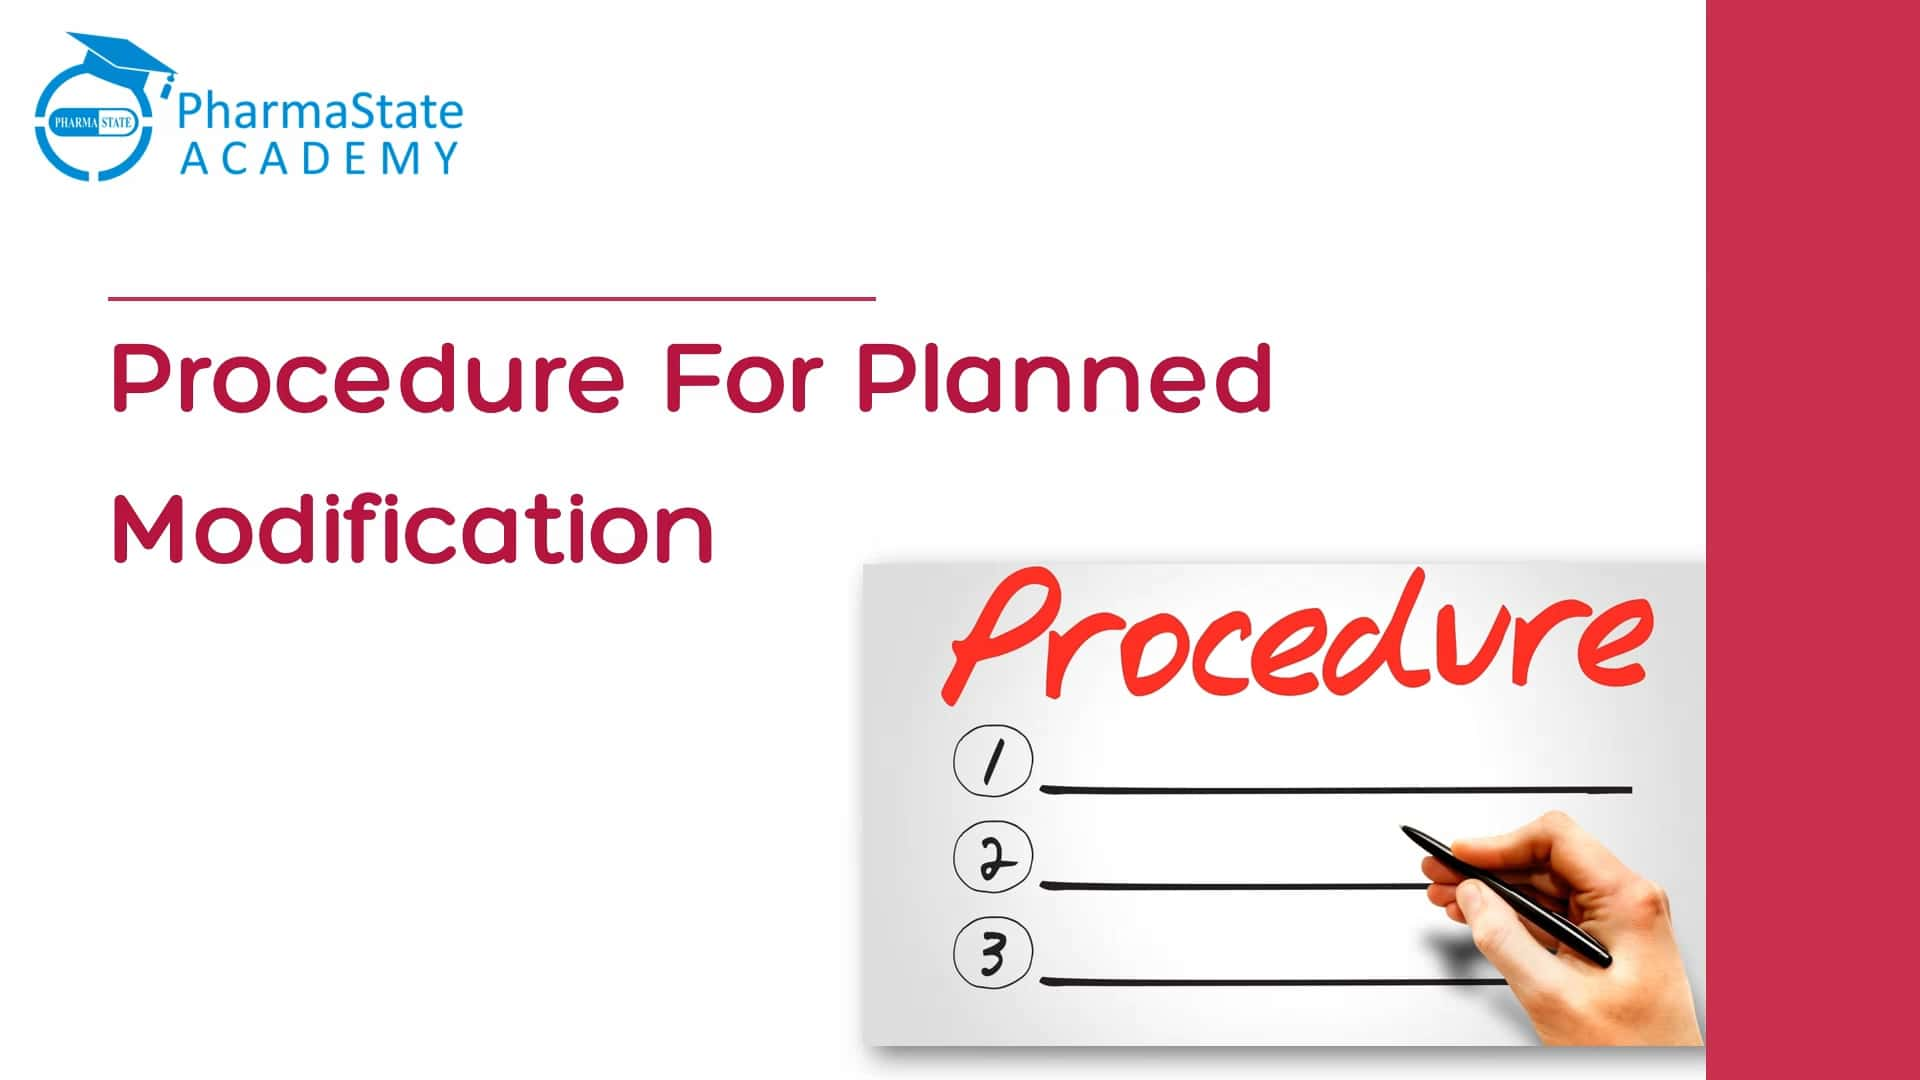 Procedure for Planned Modification